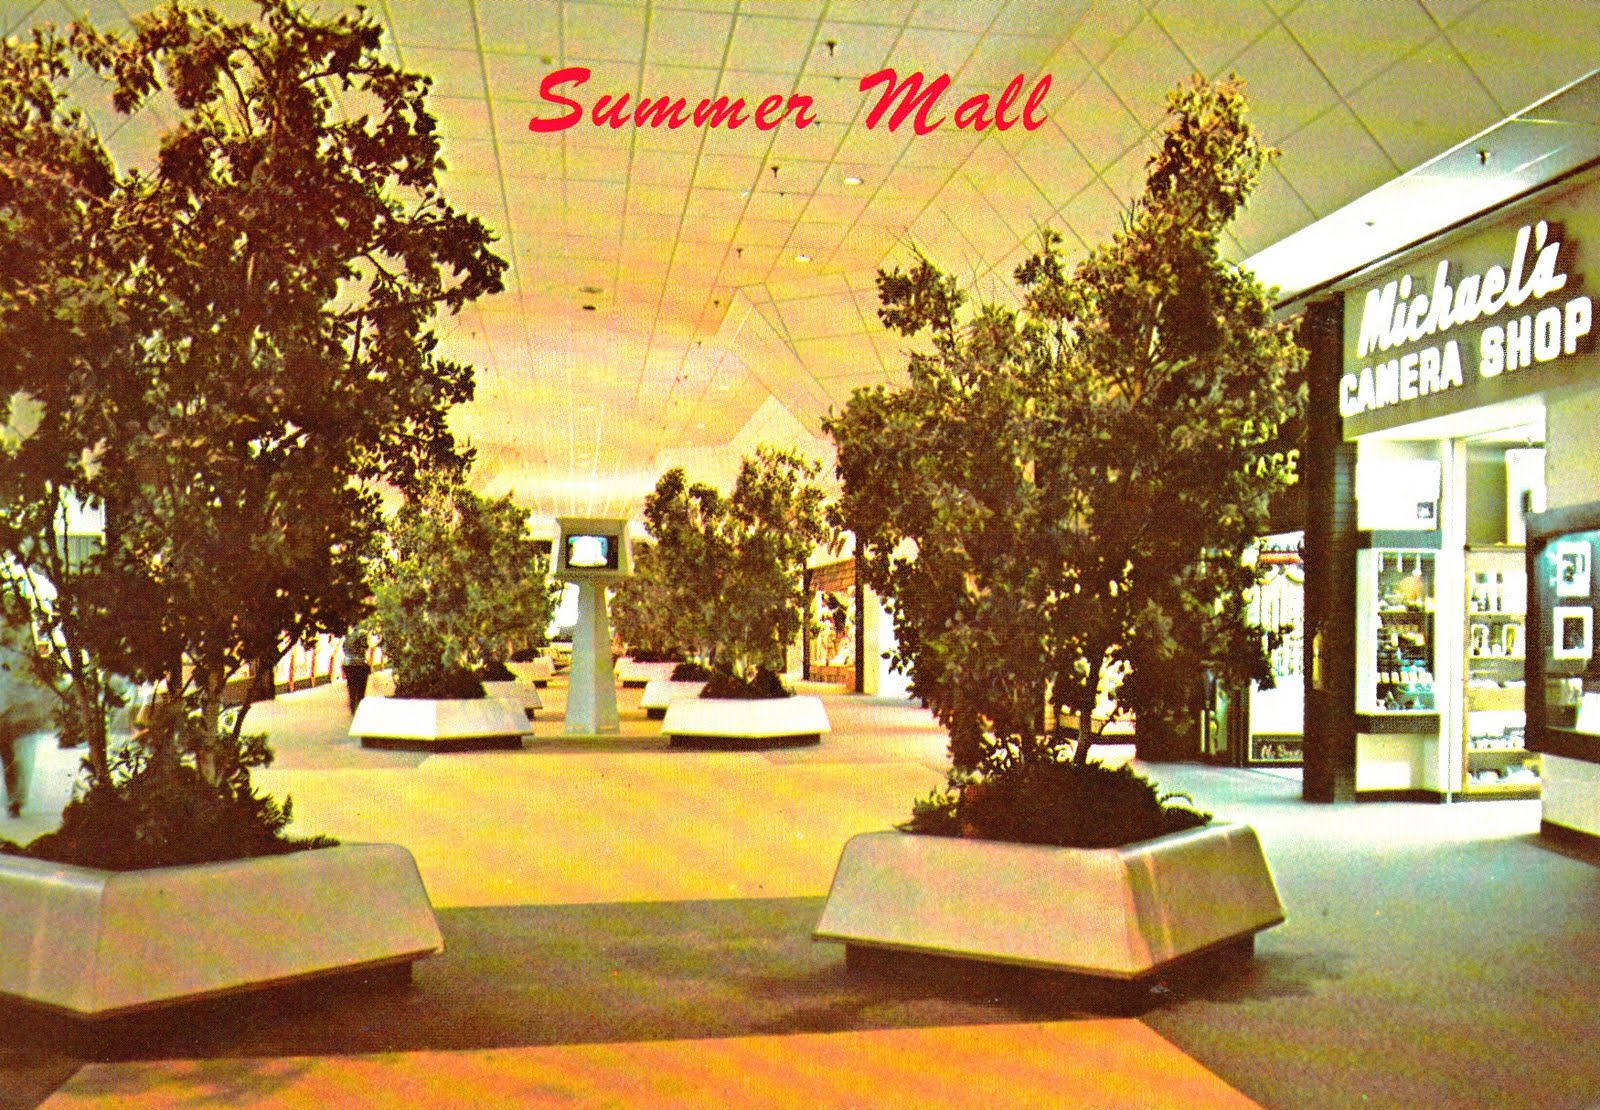 David Cobb Craig: Still More Selections From My Collection of Mall Post Cards